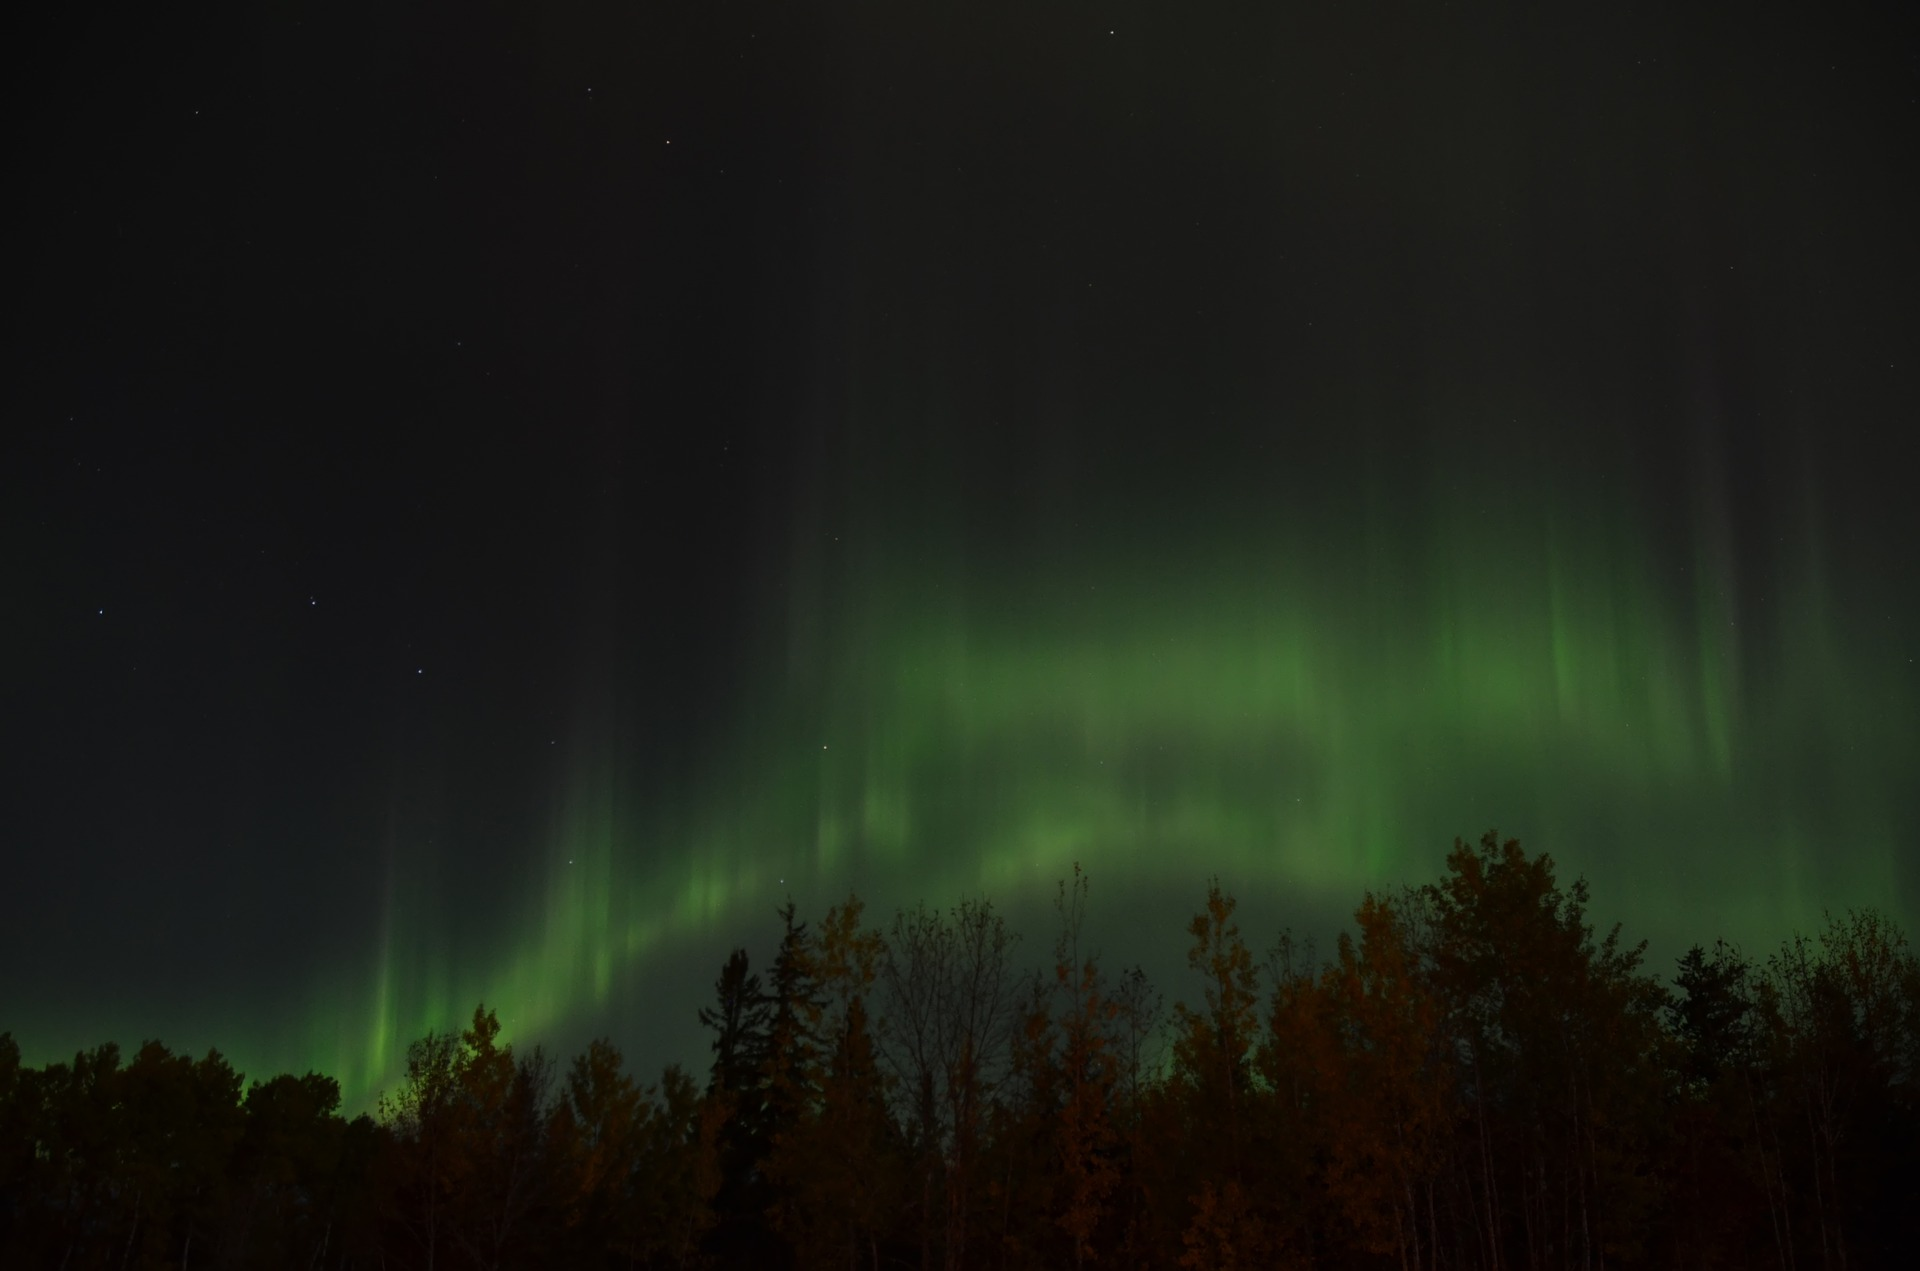 Northern lights seen from the Stargazing Cabin at Gordon's Park on Manitoulin Island